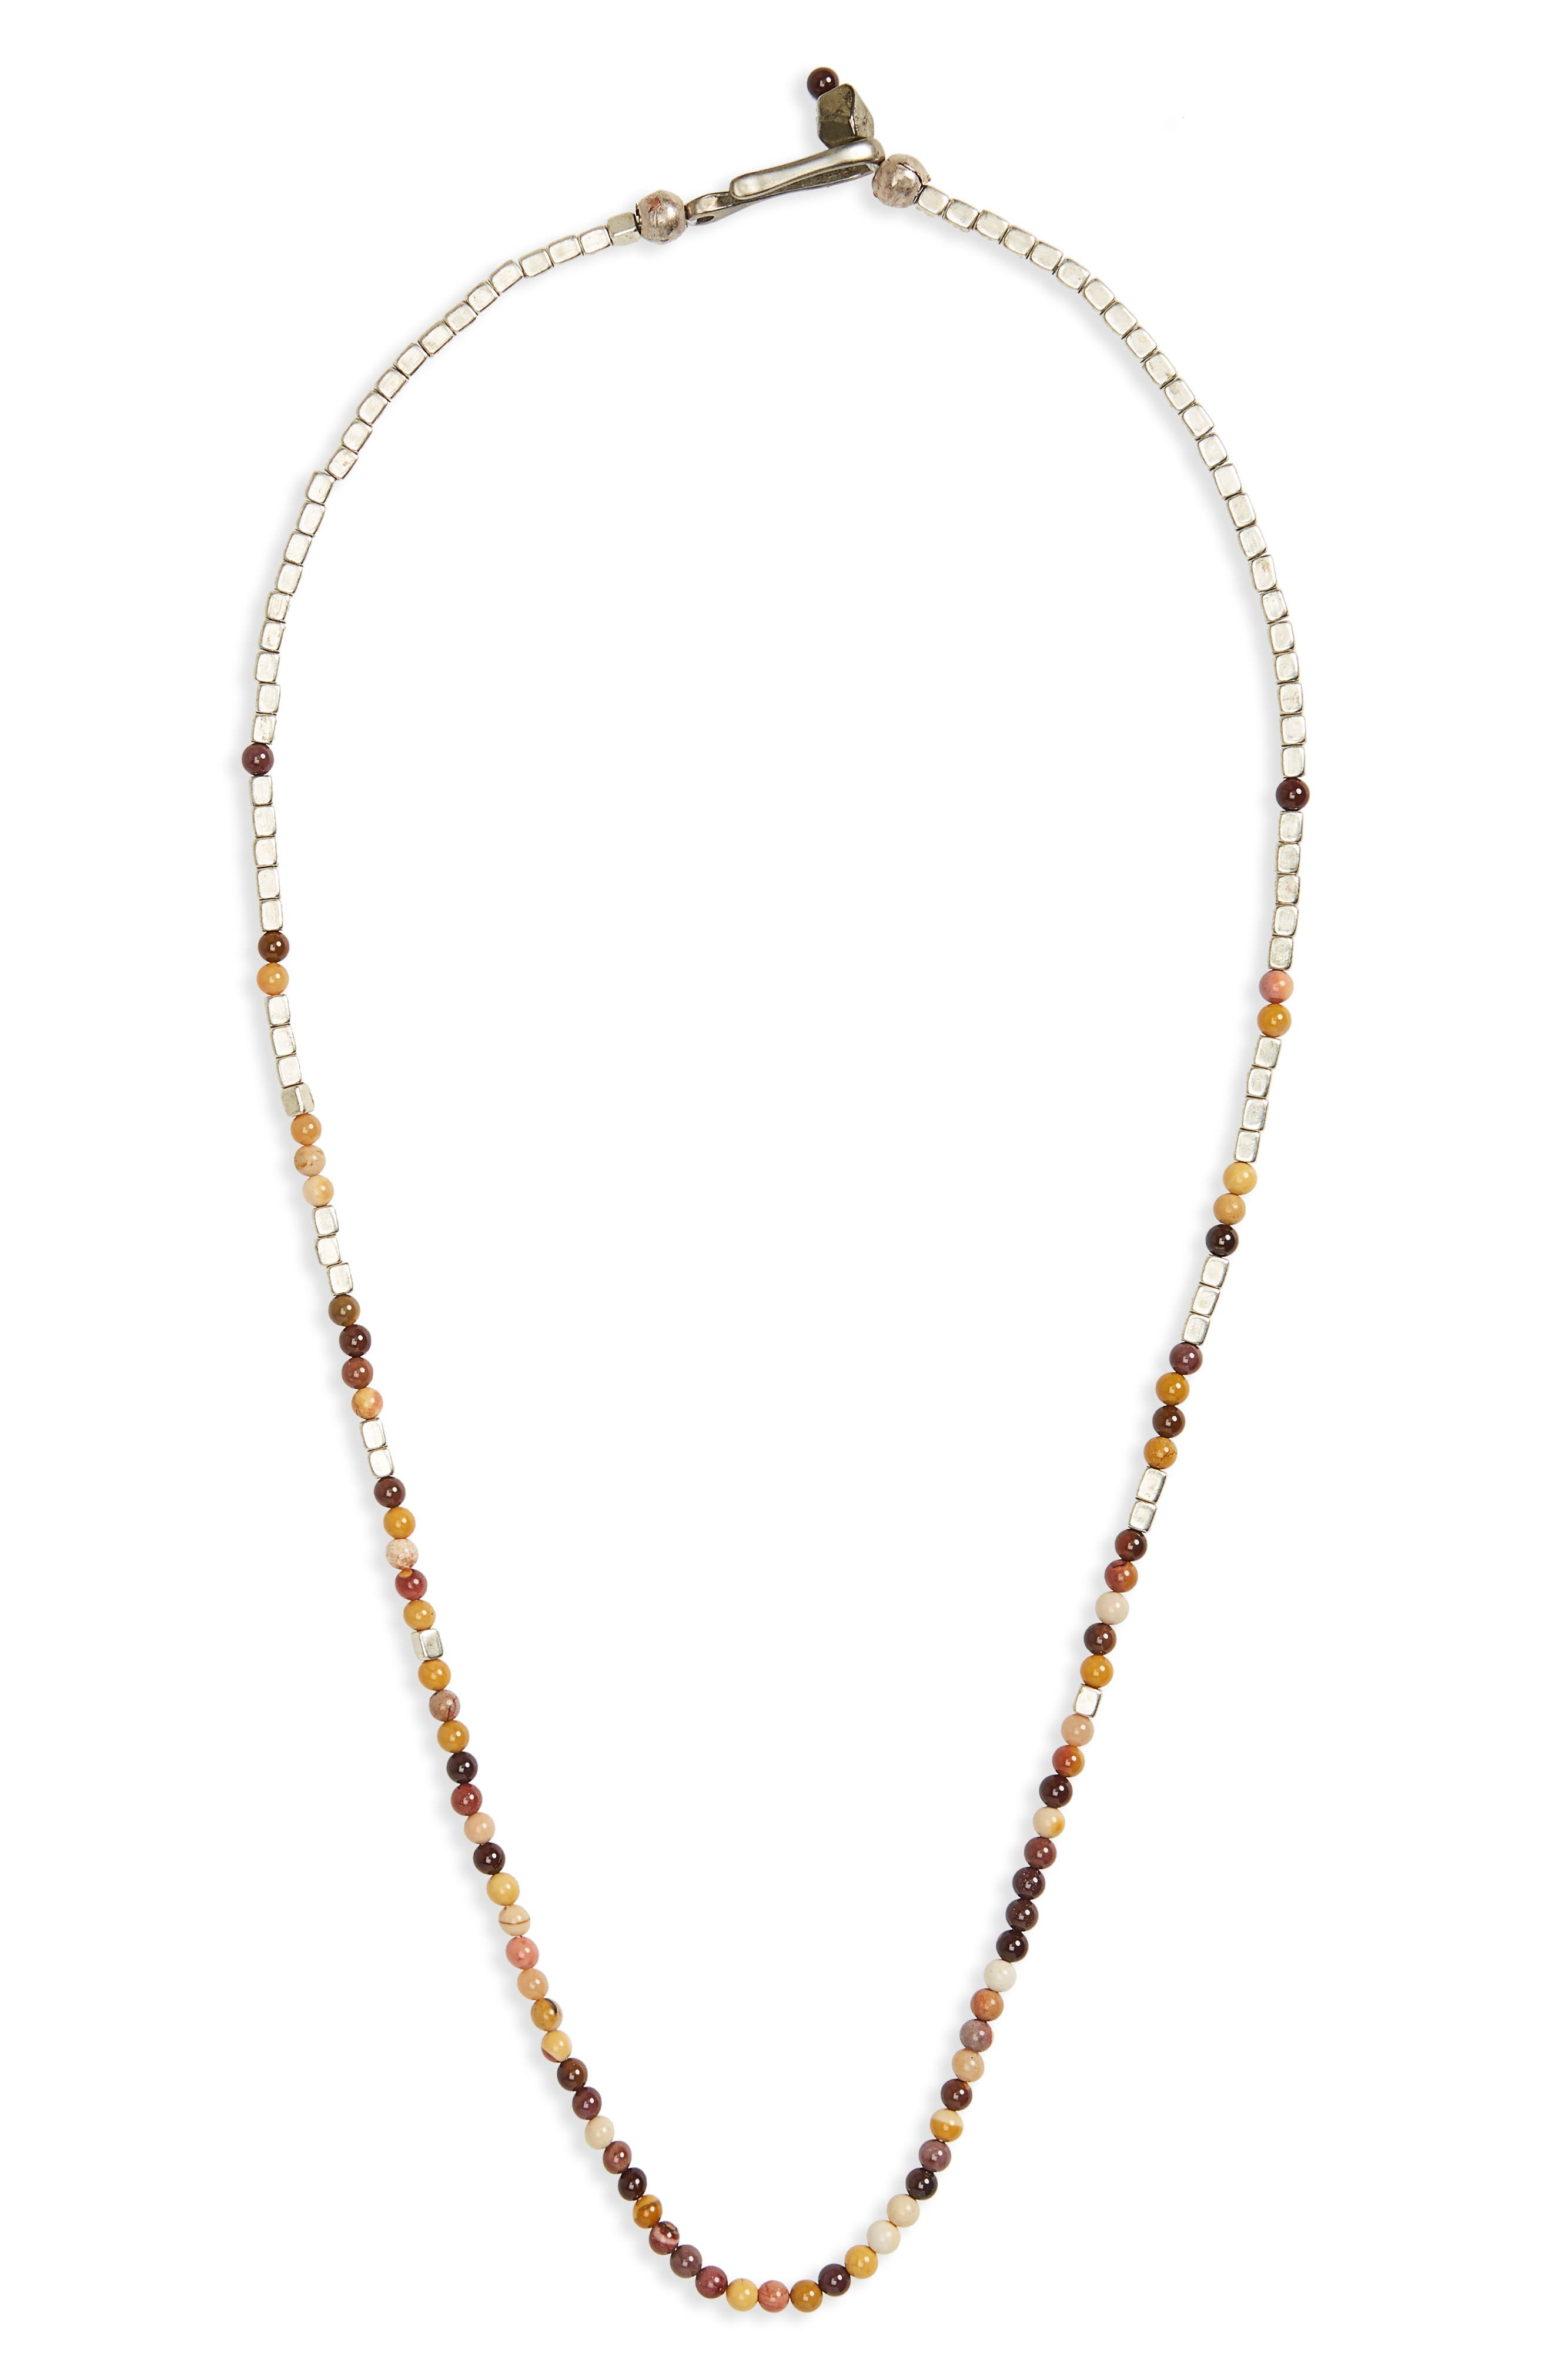 Mookaite Bead Necklace,                         Main,                         color, SILVER/ BROWN